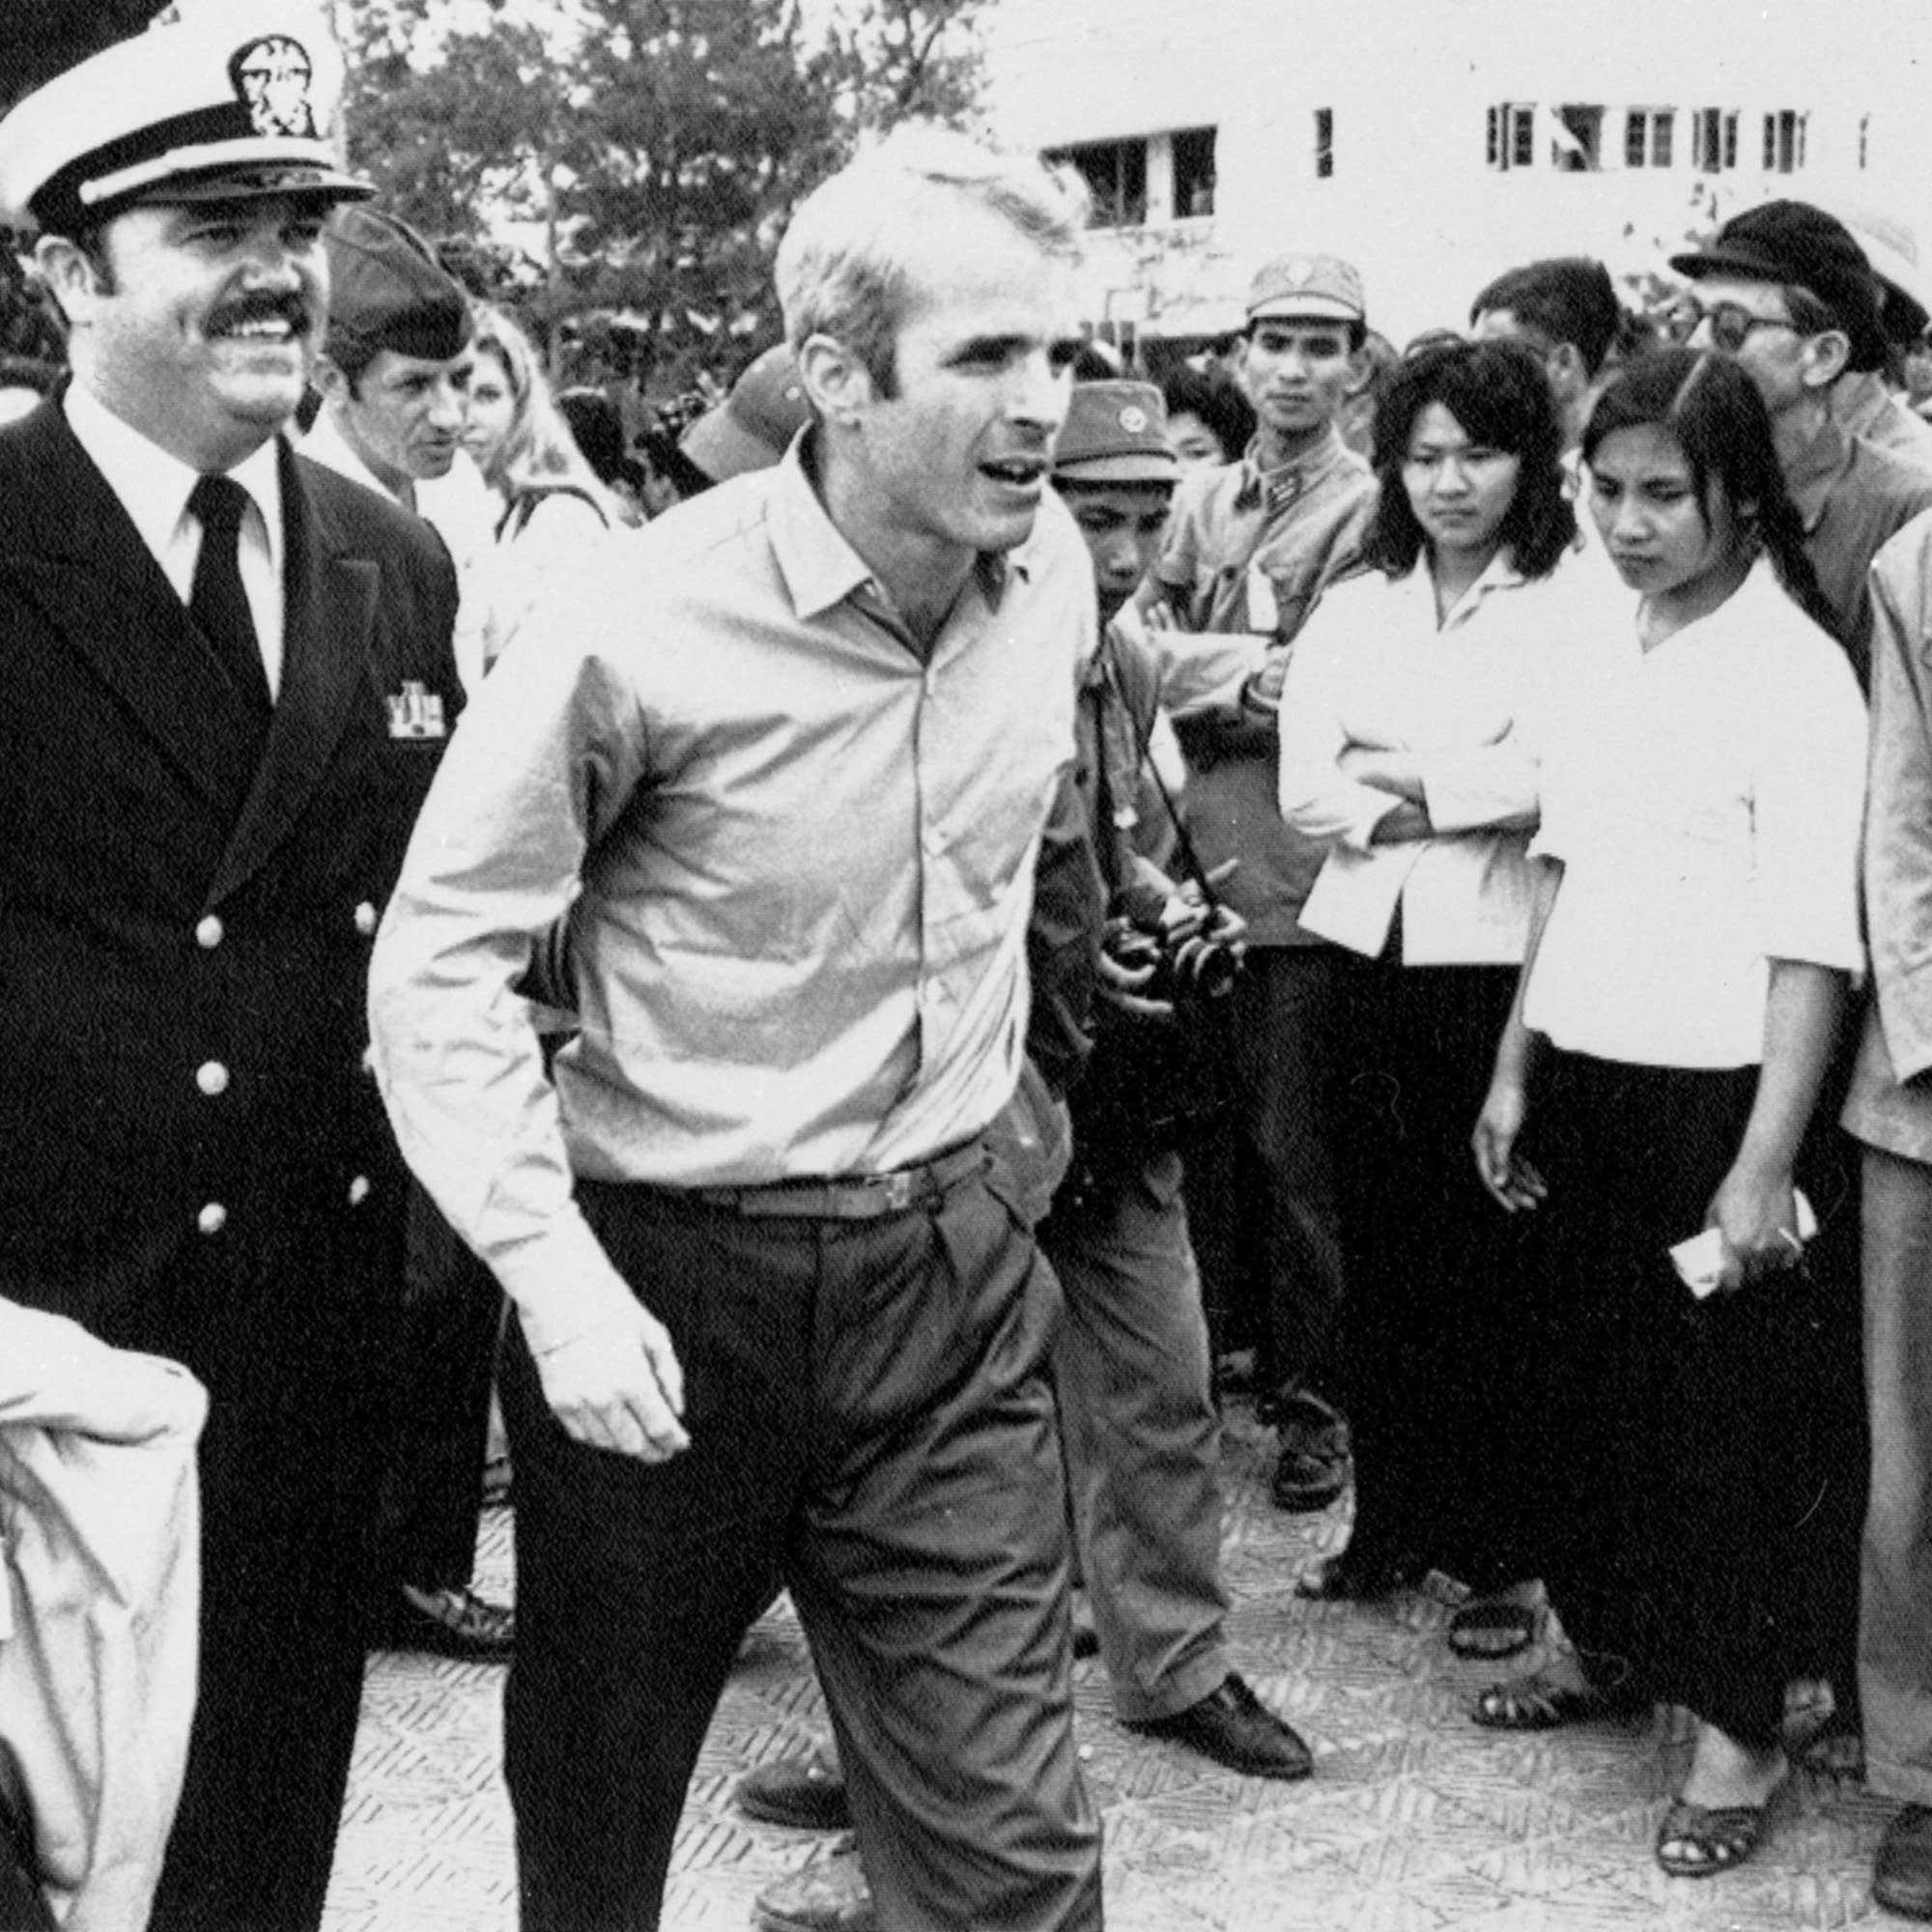 For McCain, a life of courage and politics came down to one vote